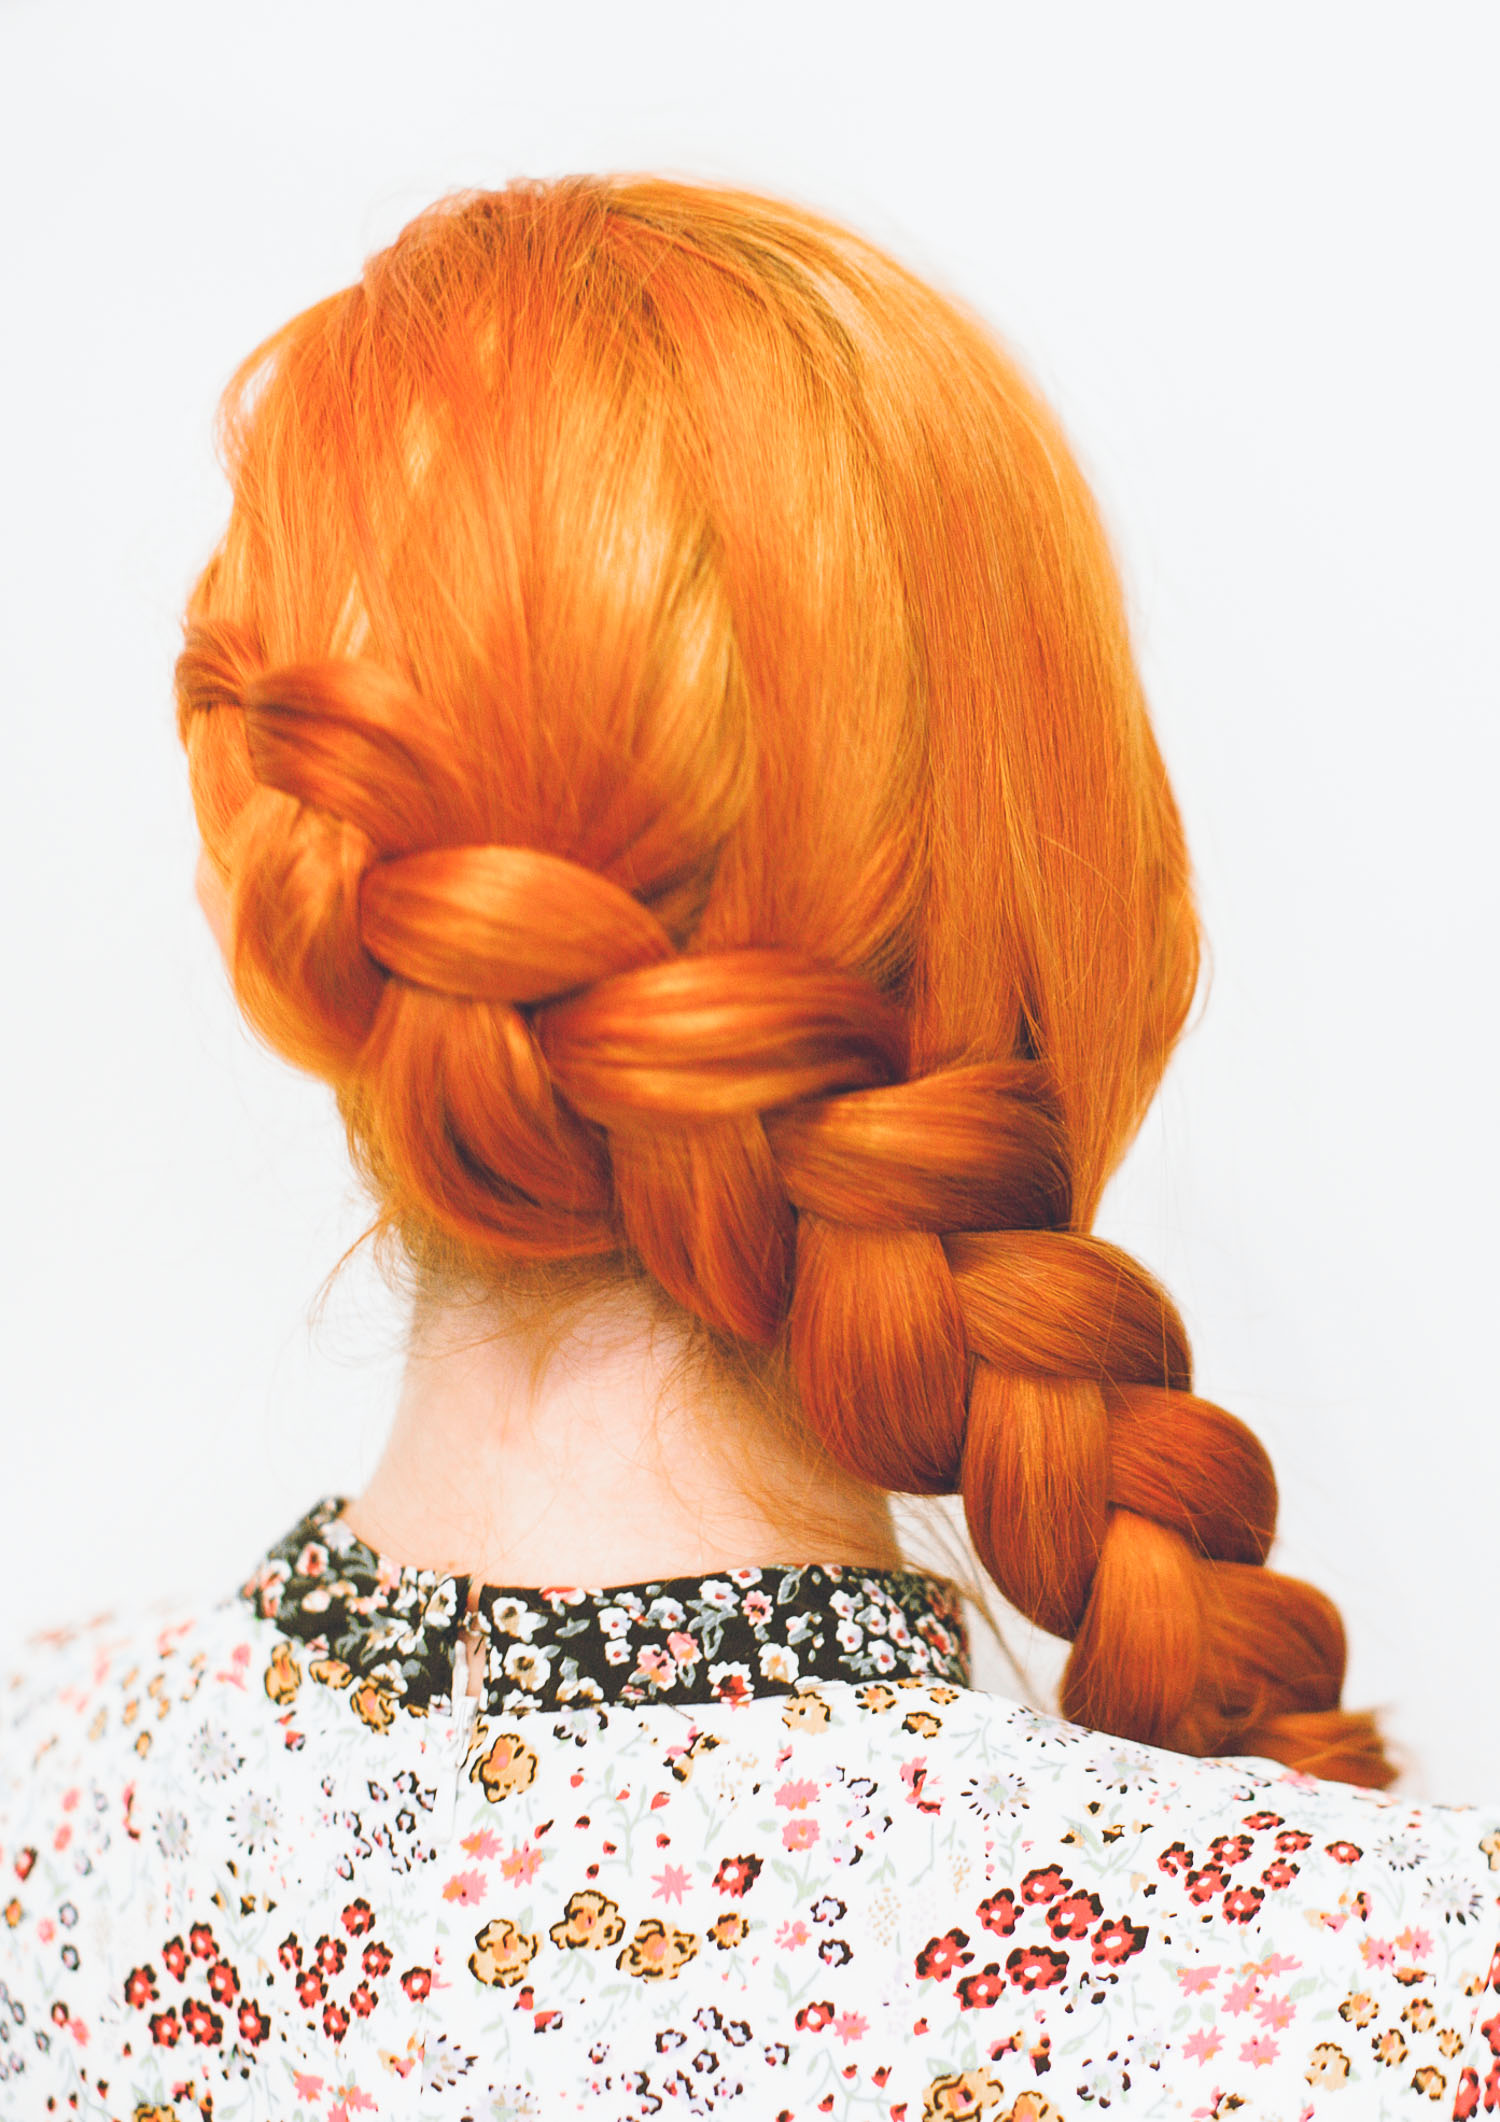 6a00d8358081ff69e201bb0929788e970d - Easy yet Trendy hairstyles for Girls 2018